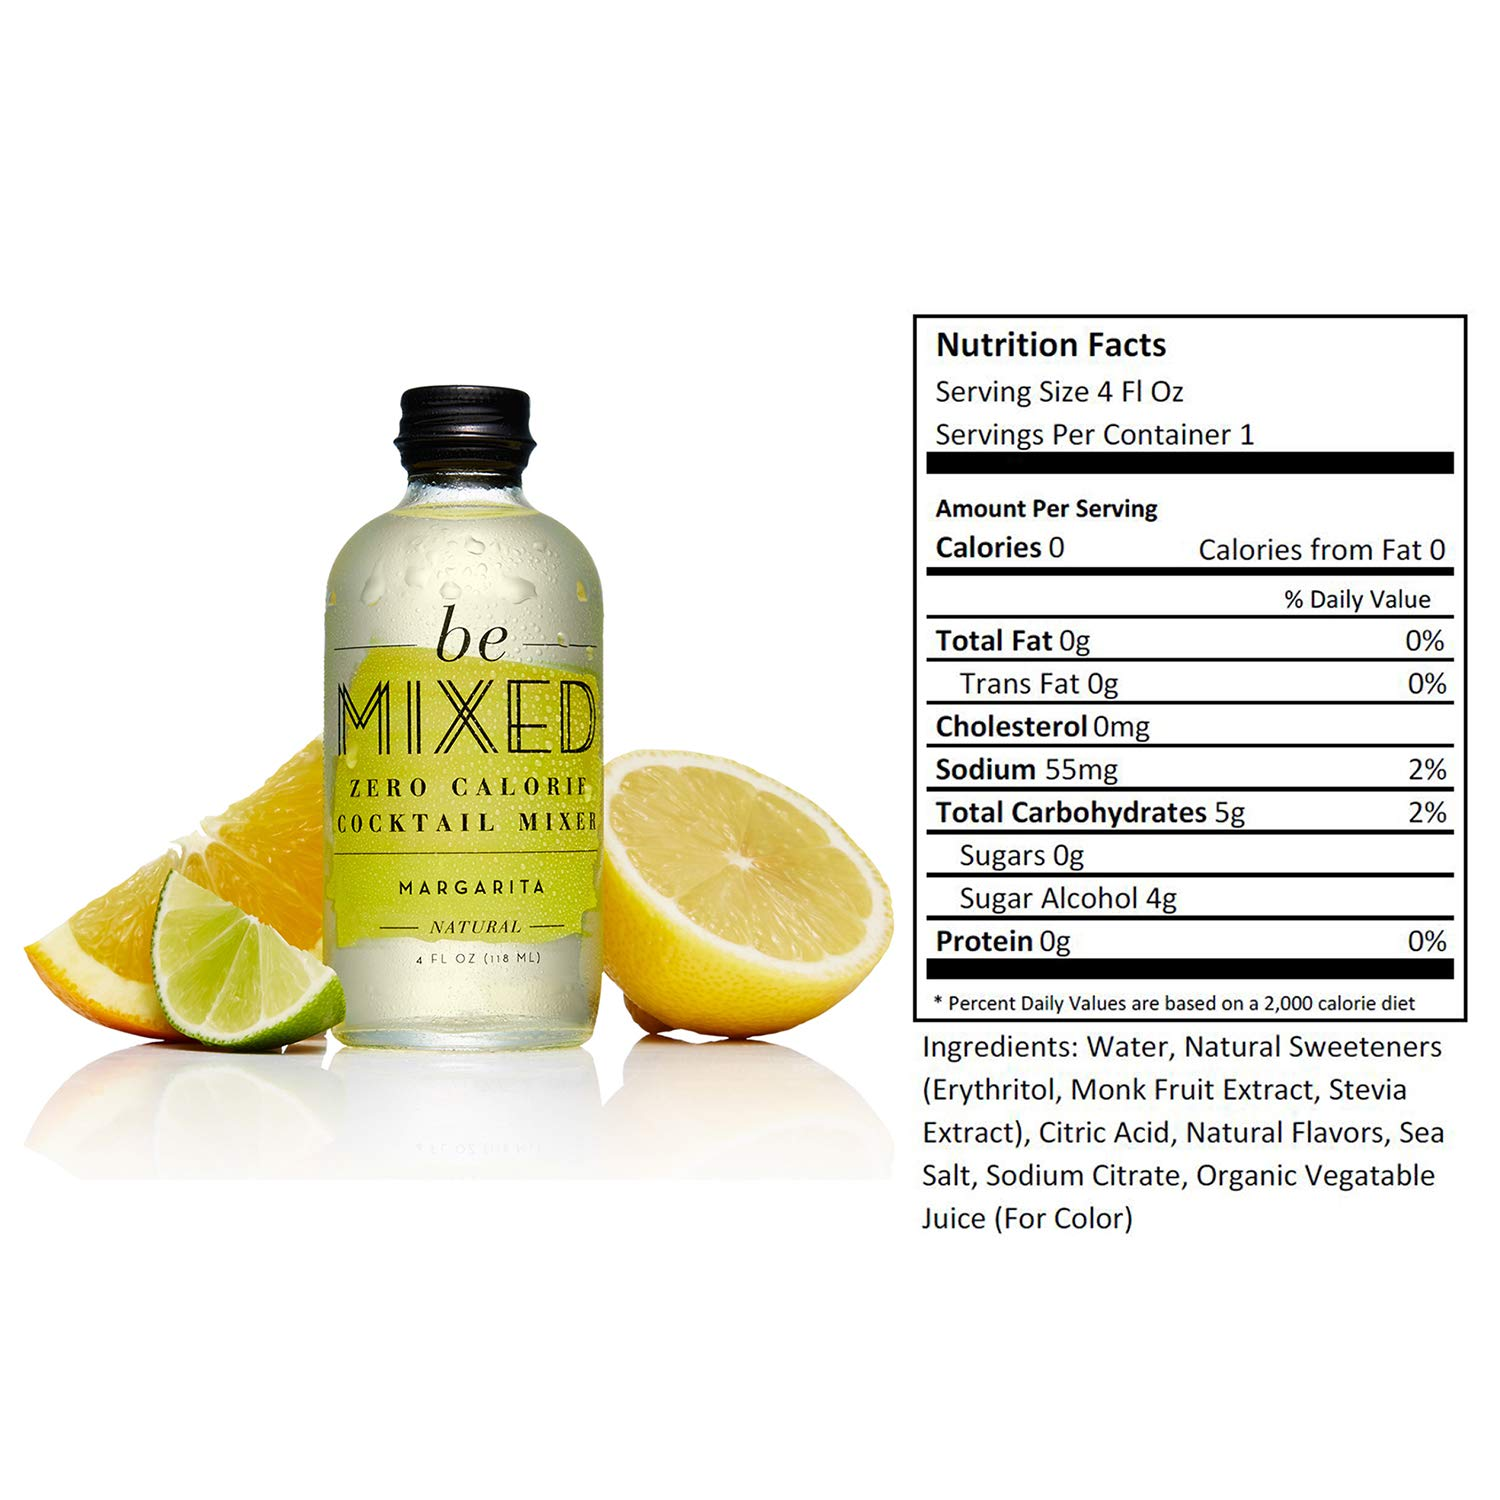 Zero Calorie Margarita Cocktail Mixer by Be Mixed | Low Carb, Keto Friendly, Sugar Free and Gluten Free Drink Mix | 4 oz Glass Bottles, 12 Count by Be Mixed (Image #2)